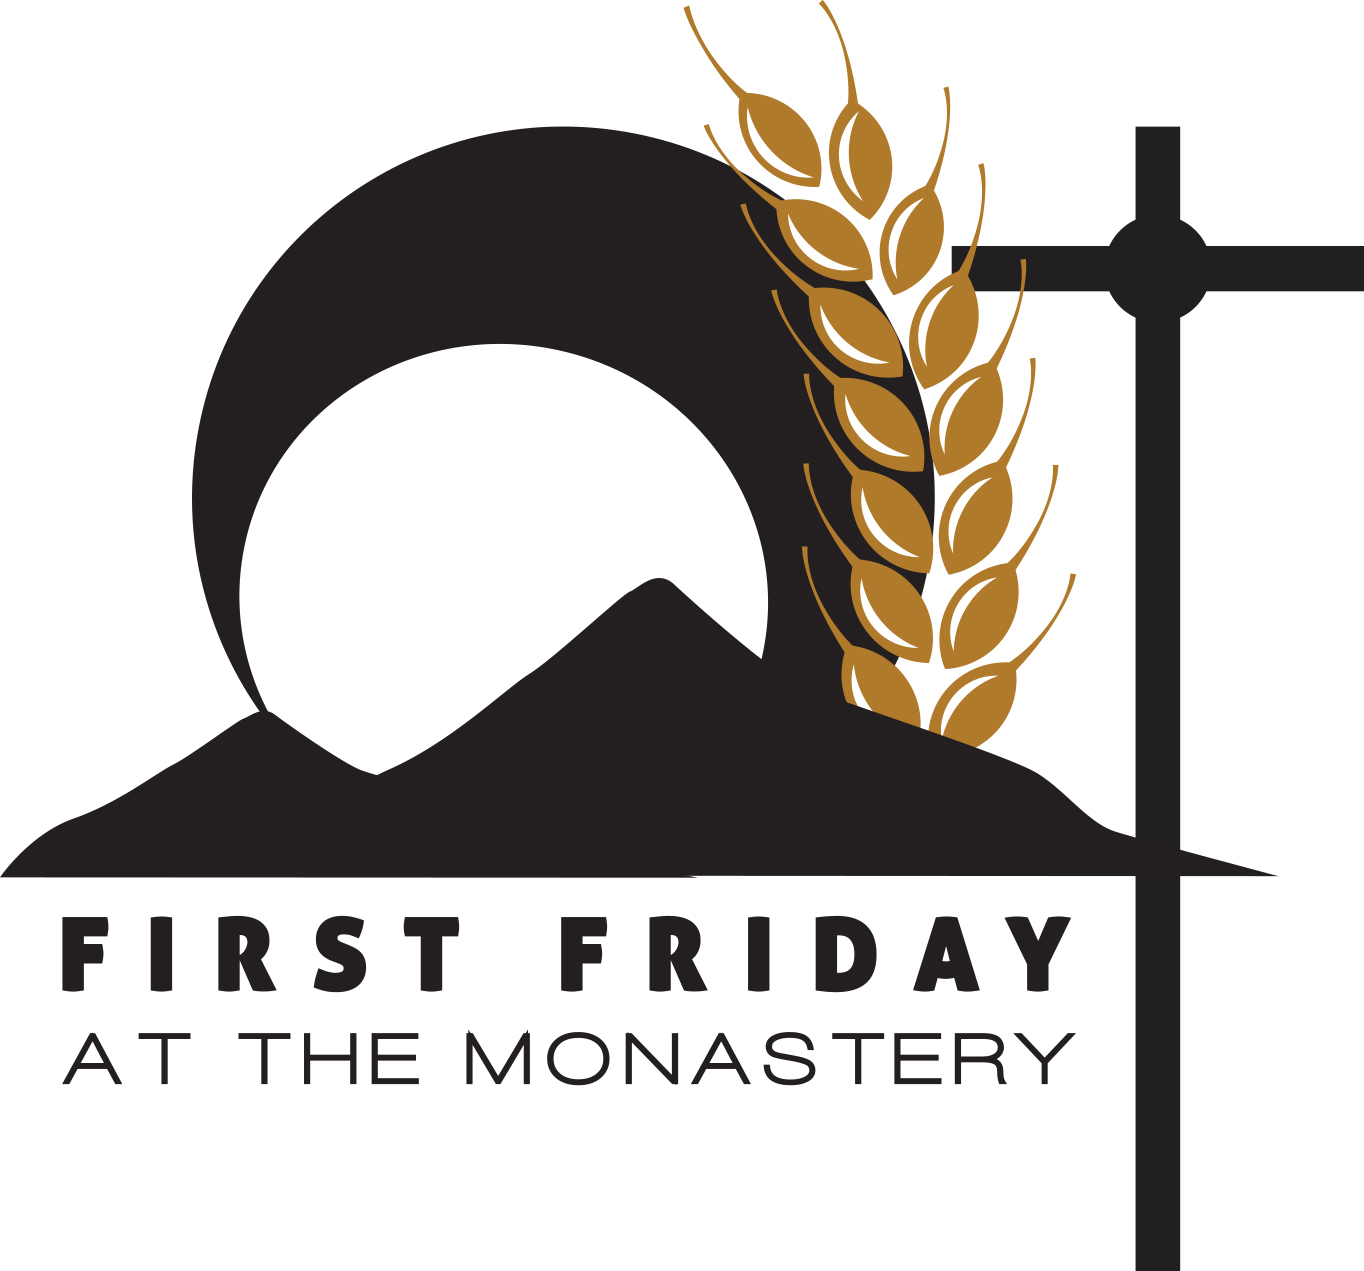 First Friday at the Monastery - FEB 2017